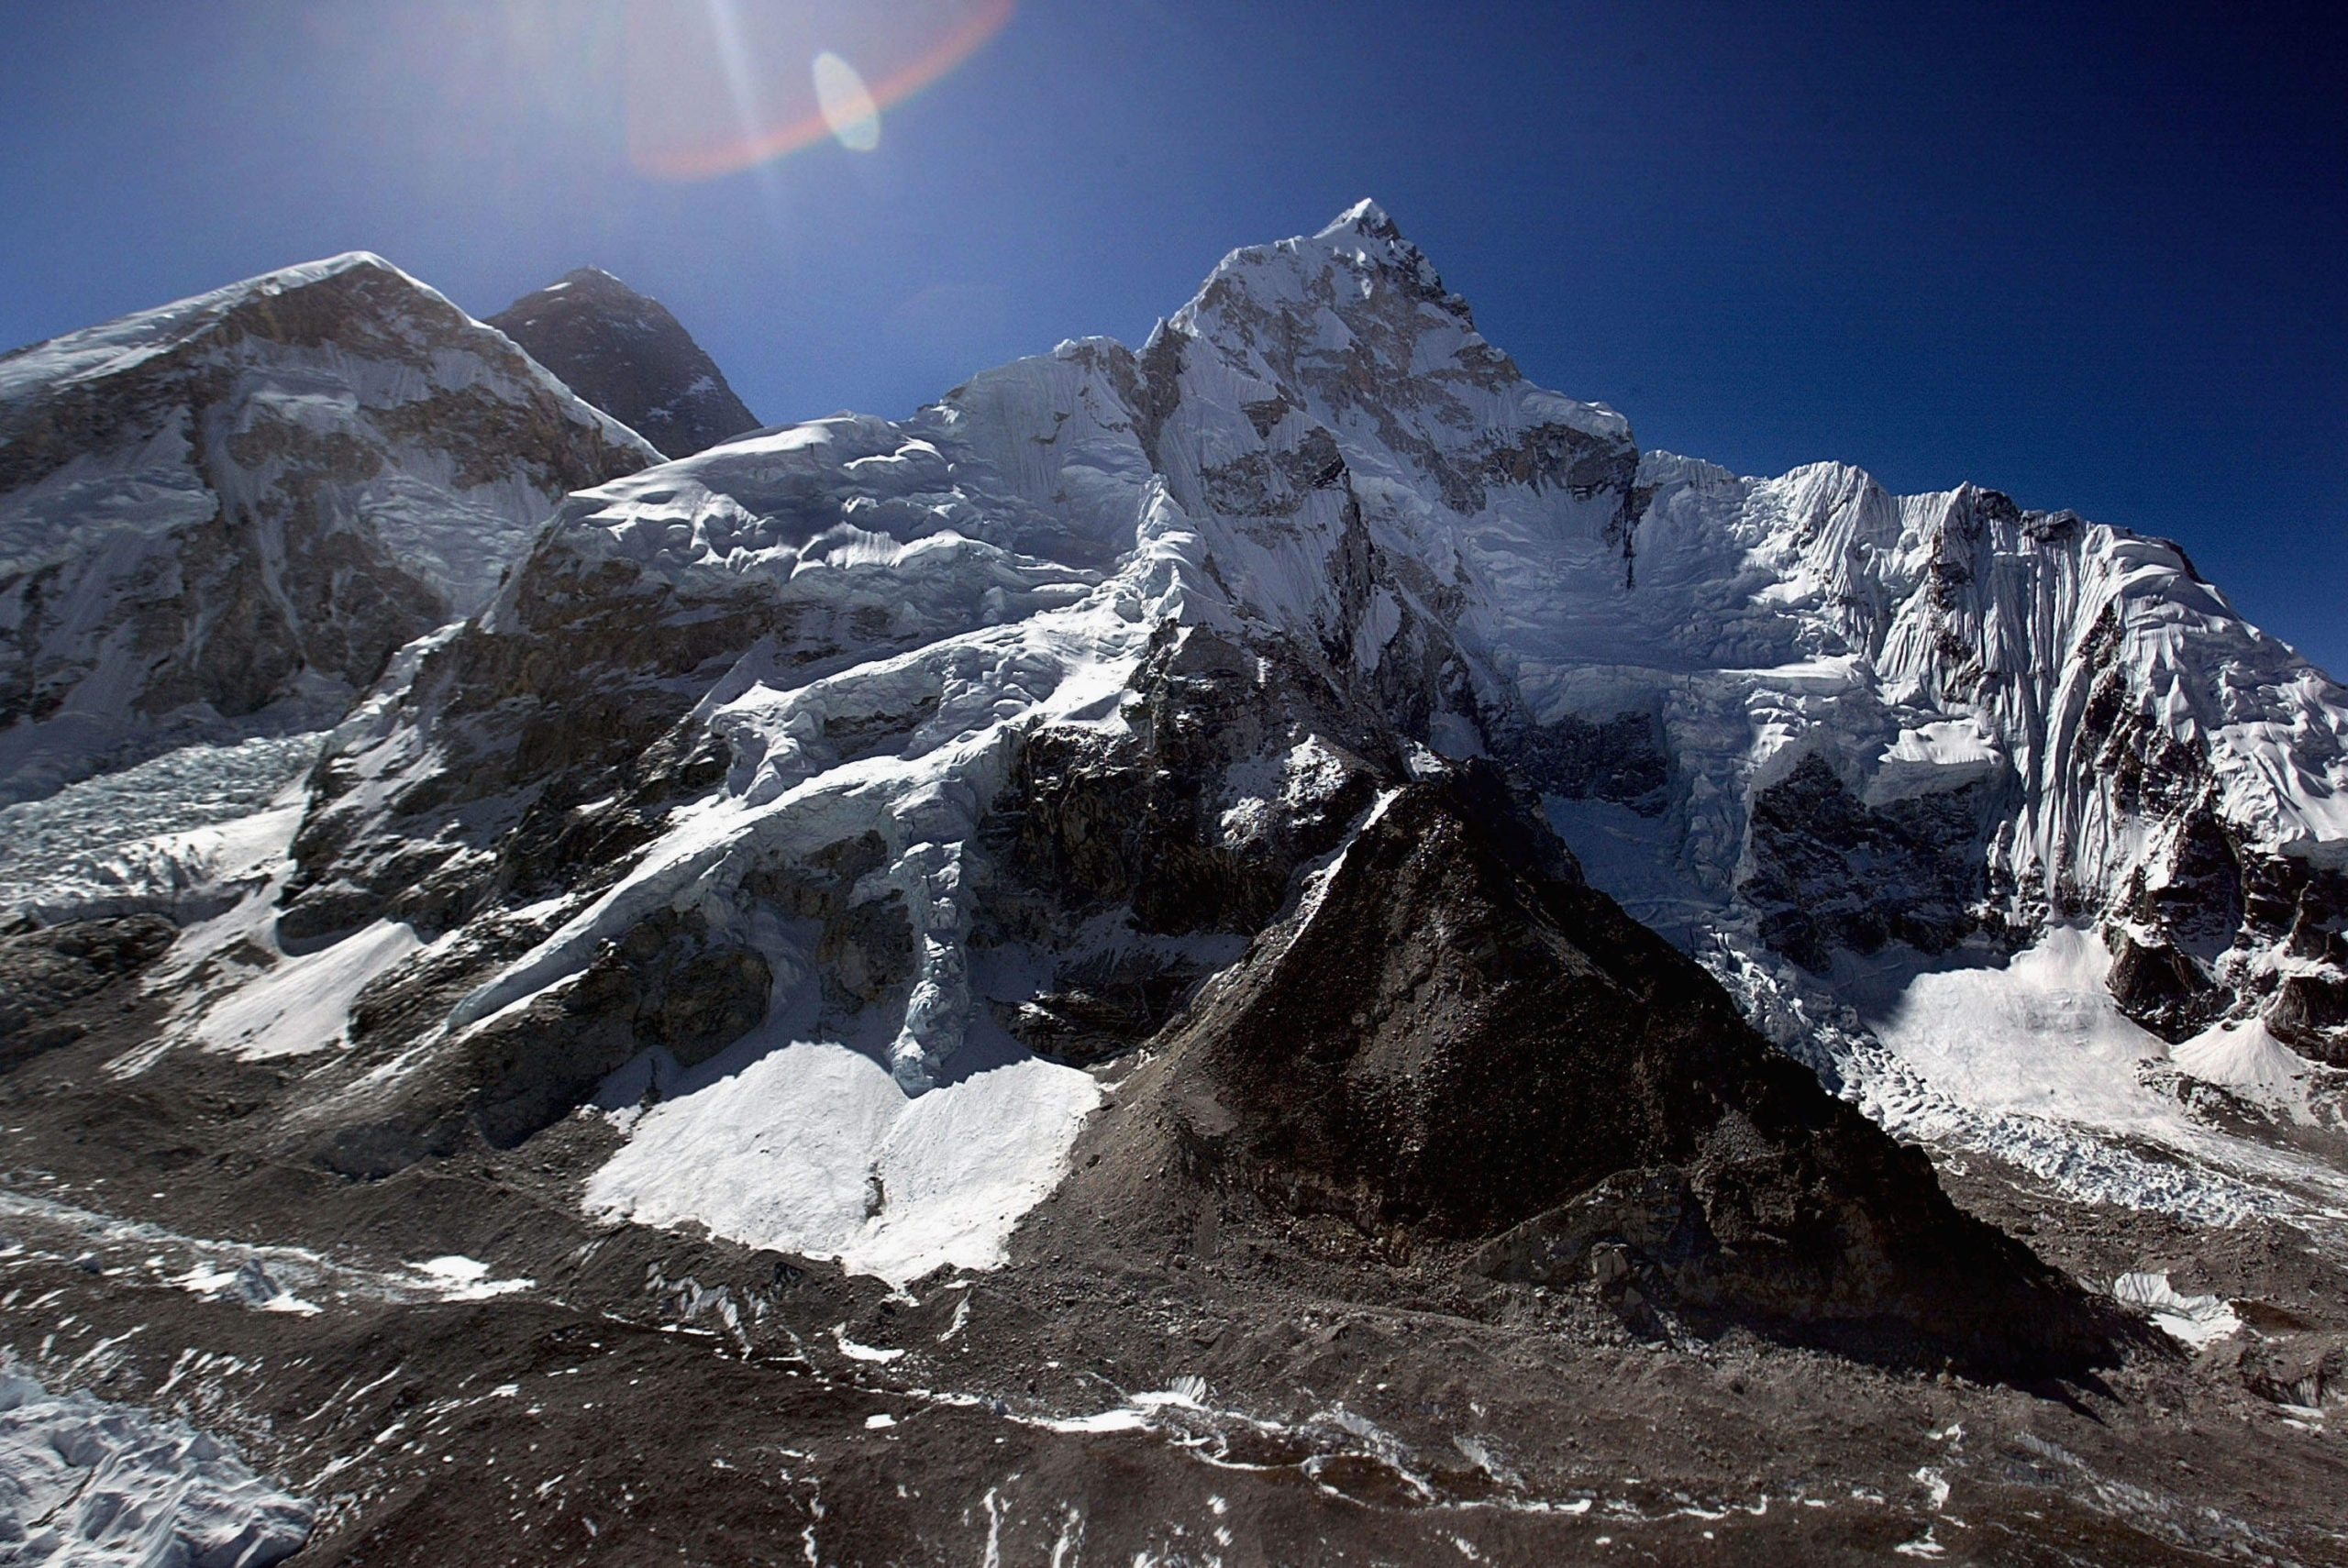 Jan Morris: No one else needs to climb Everest – let's turn it into a memorial